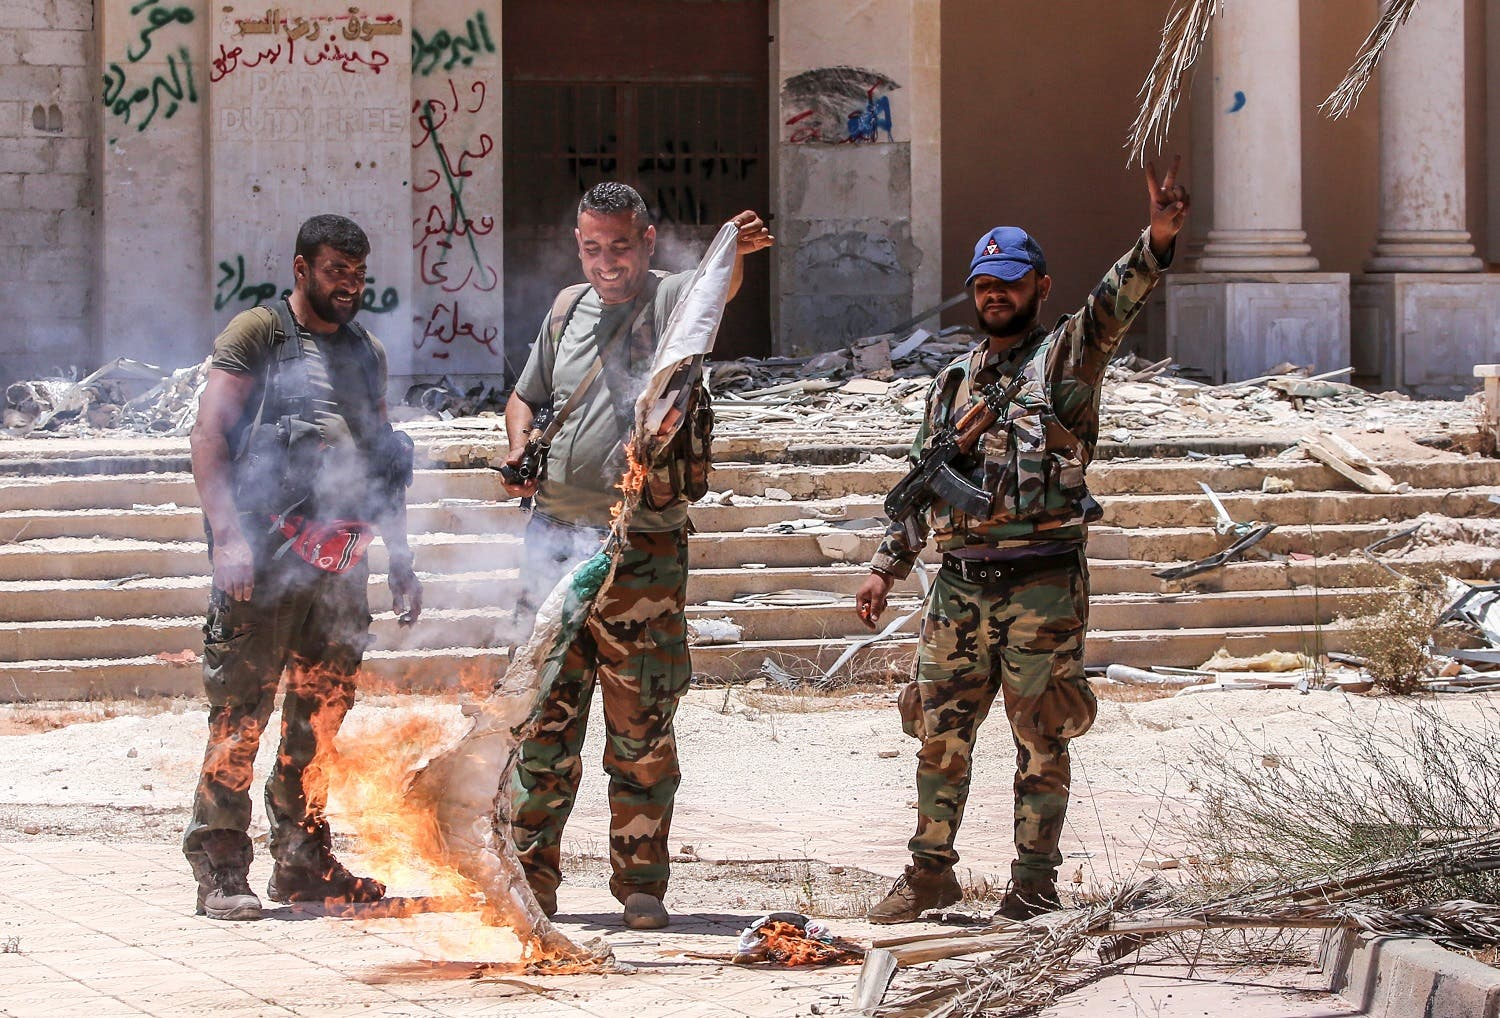 Syrian government soldiers burn an opposition flag while flashing the victory gesture at the Naseeb border crossing with Jordan in the southern province of Daraa on July 7, 2018. (AFP)